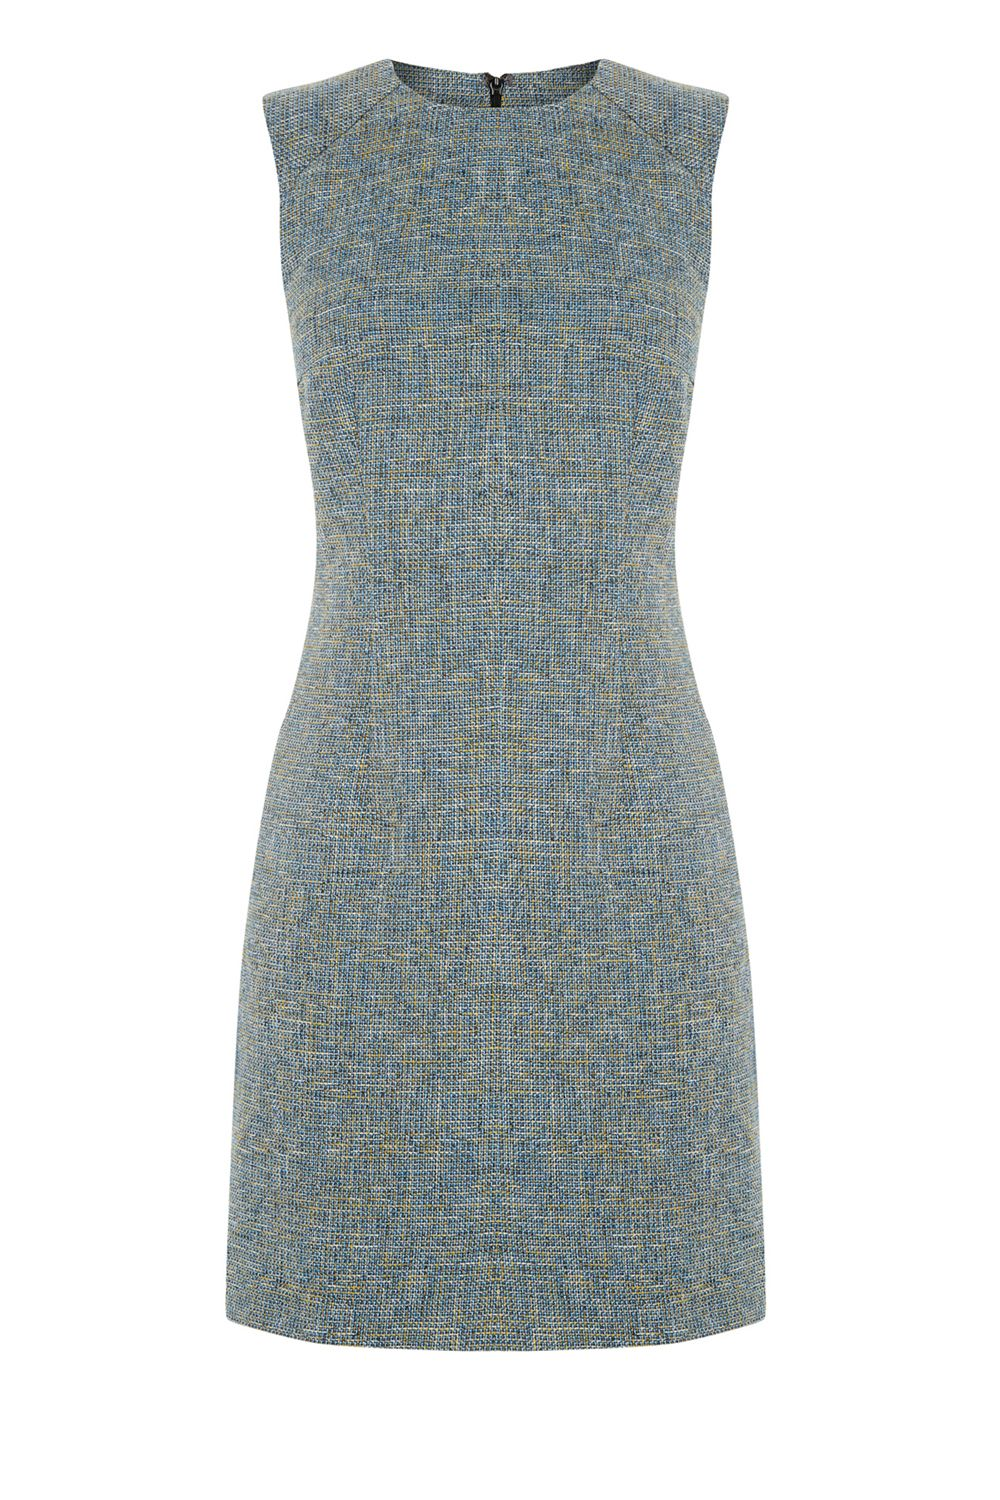 Warehouse Tweed Dress Yellow